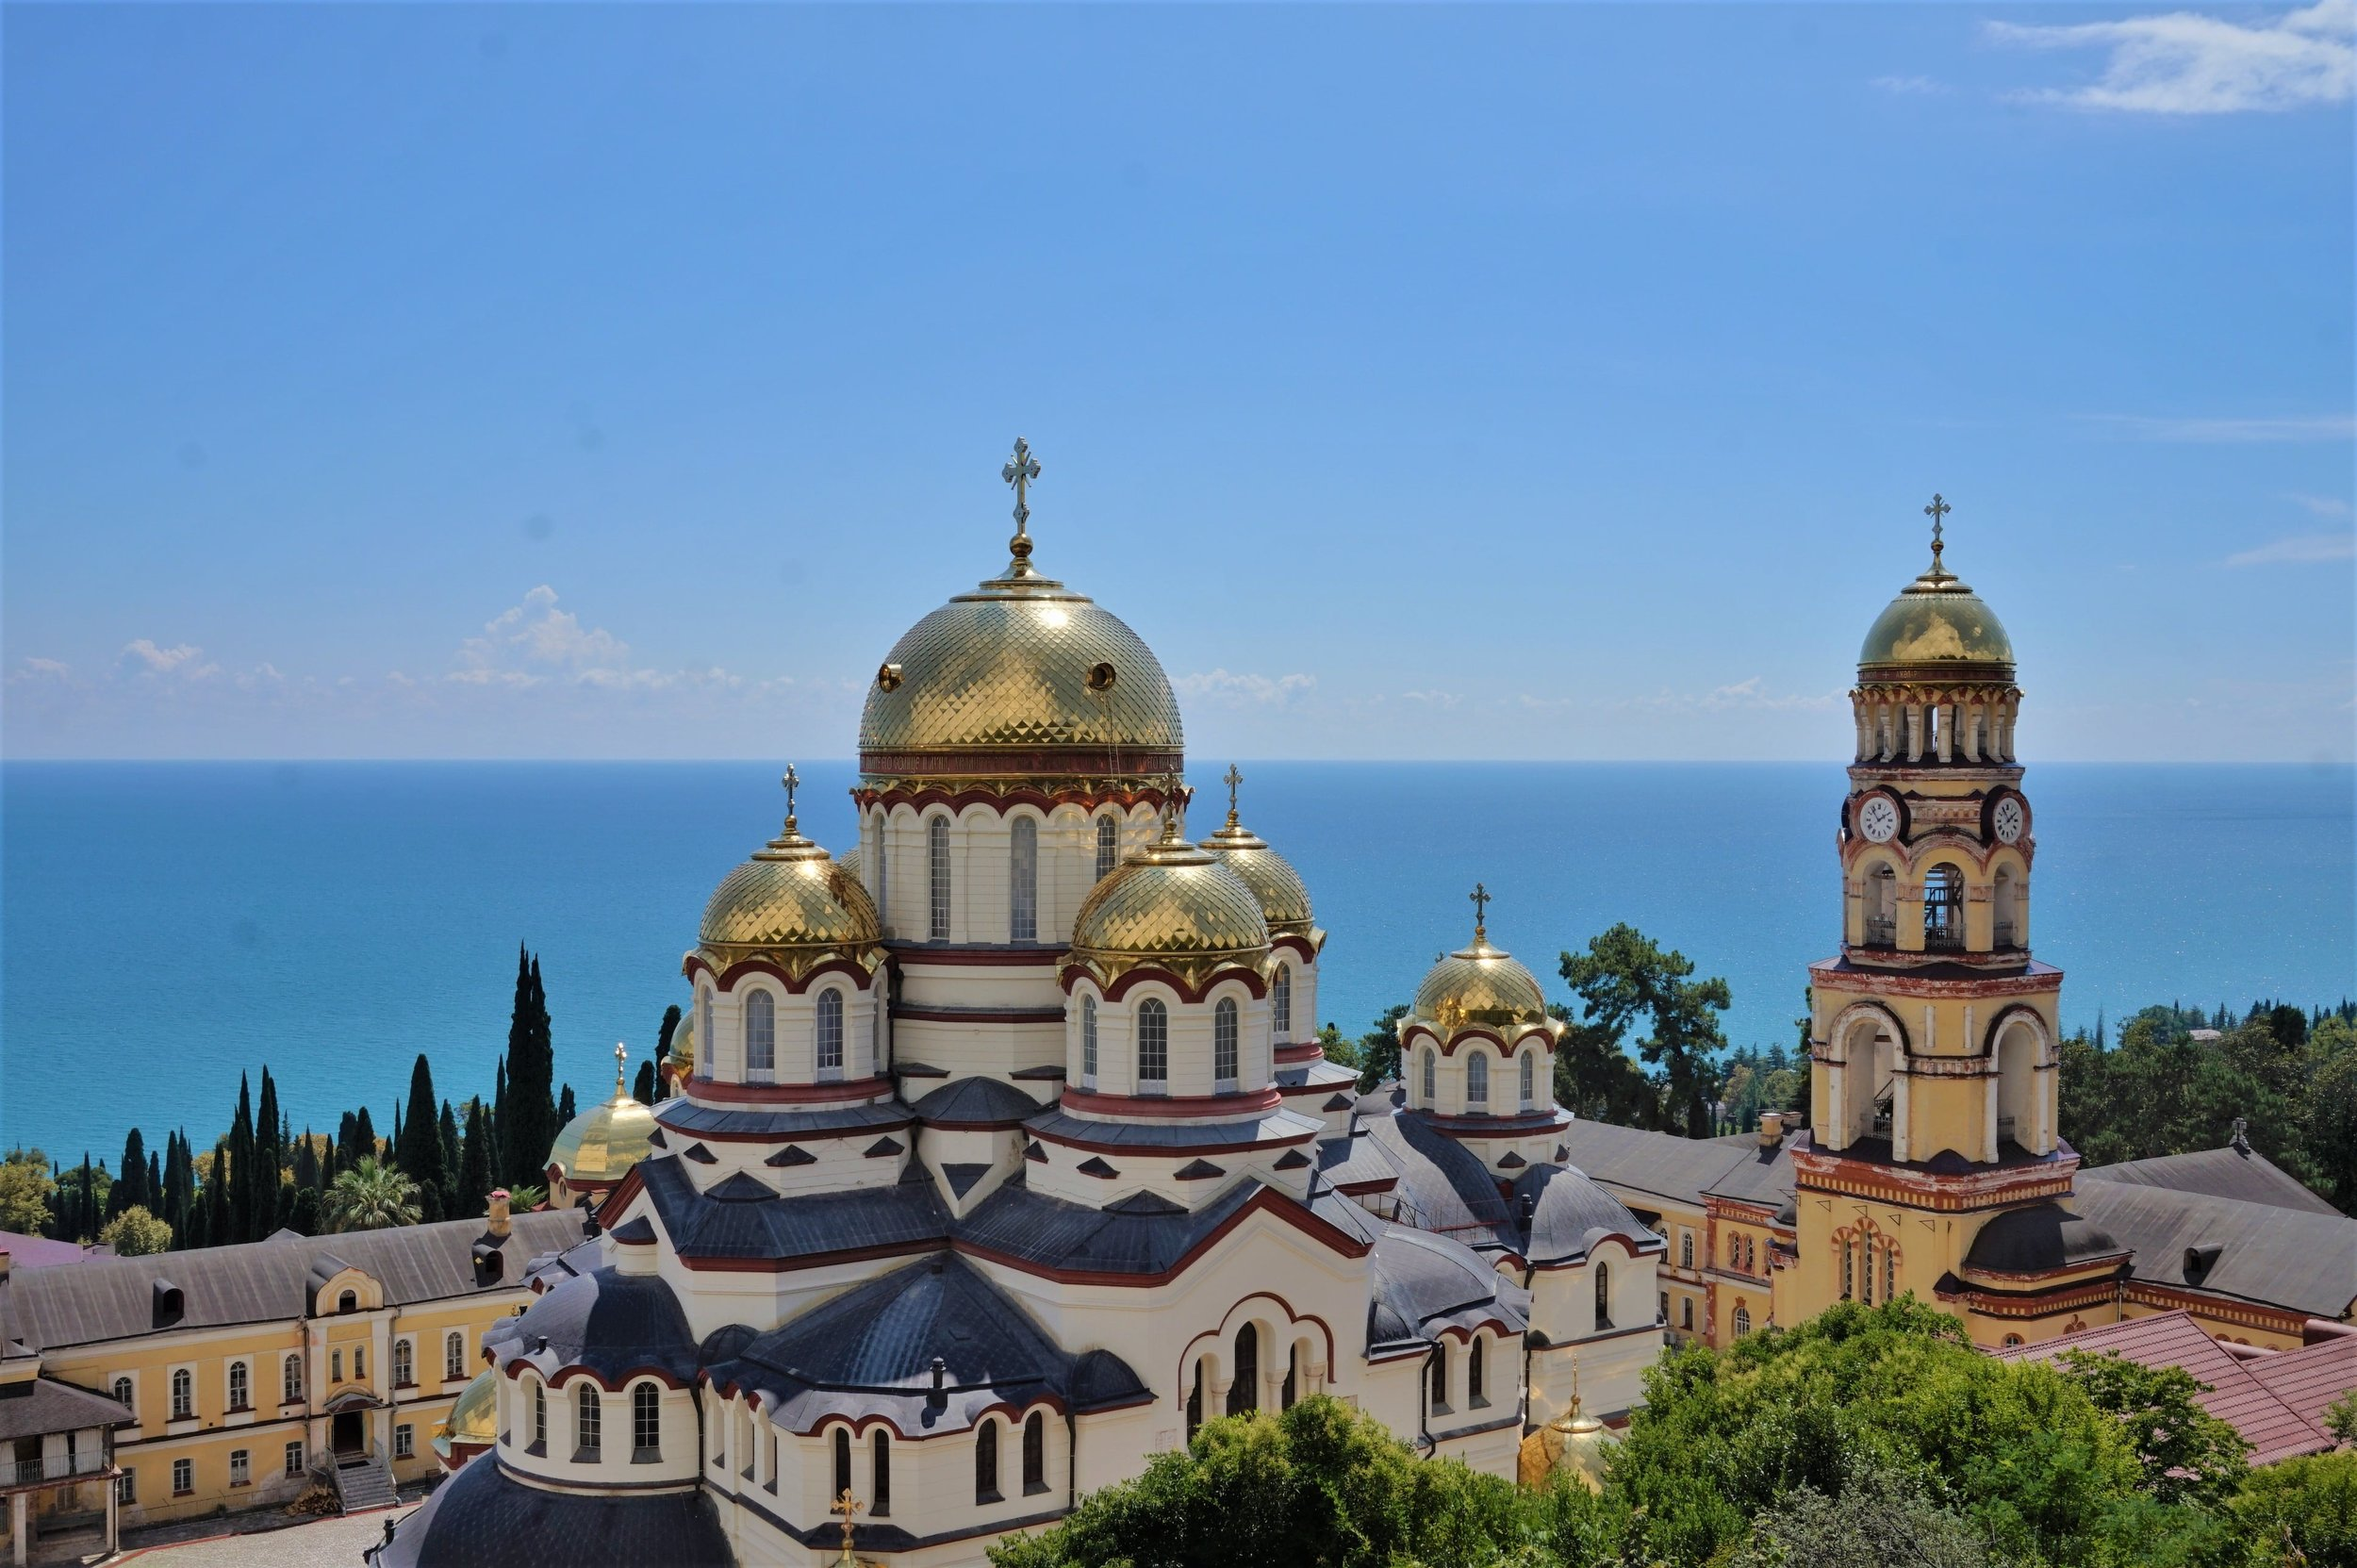 The monastery in Novy Afon is the biggest attraction to visit when you travel to Abkhazia.